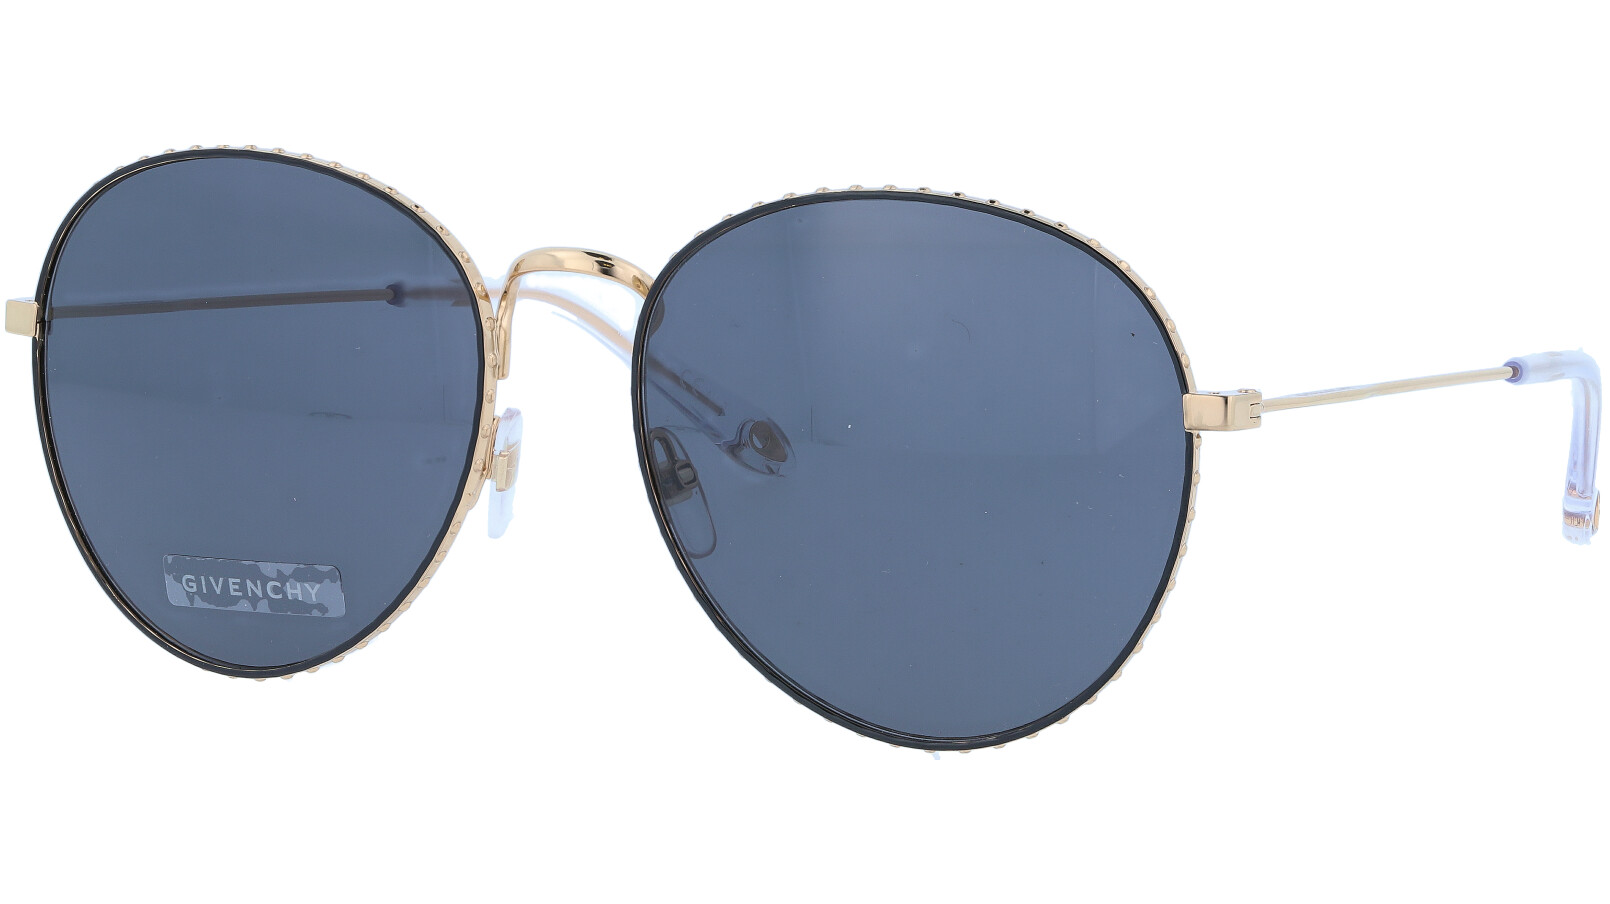 GIVENCHY GV7089S J5GIR 60 GOLD Sunglasses